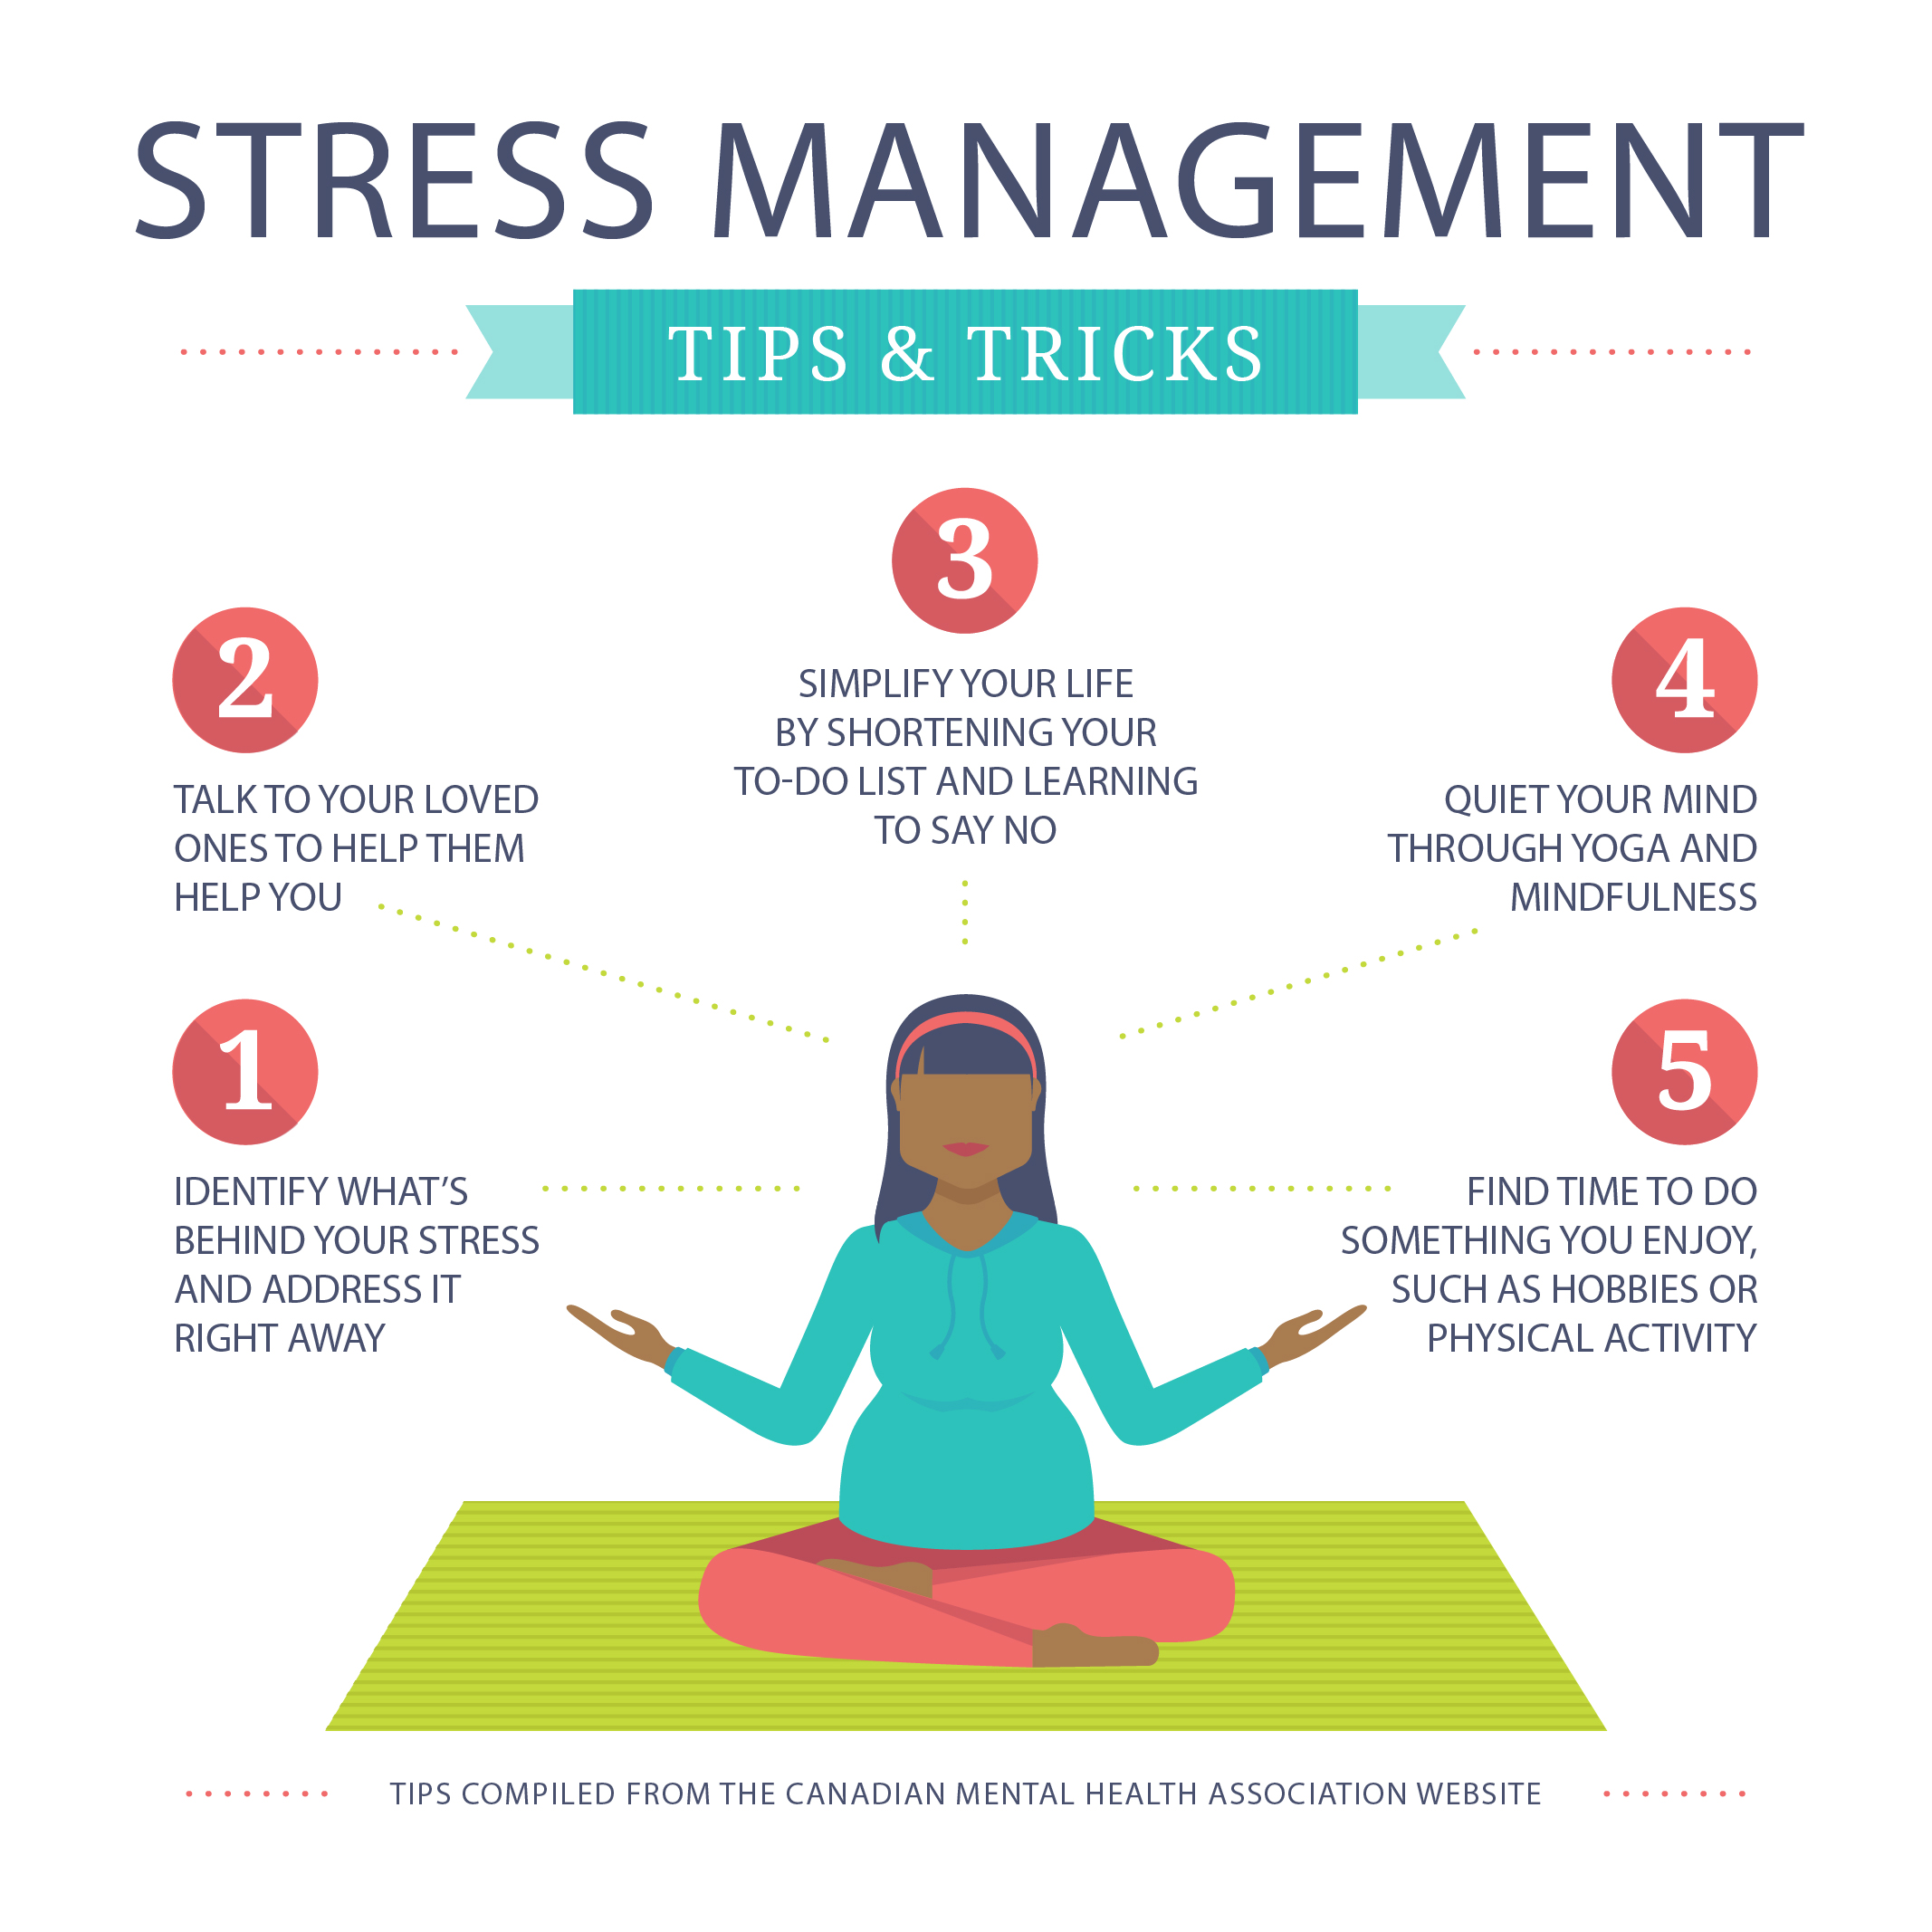 Identify what's behind your stress. Talk to your loved ones. Simplify your life by shortening your to-do list and learn to say no. Quiet your mind through yoga and mindfulness. Find time to do things you enjoy.